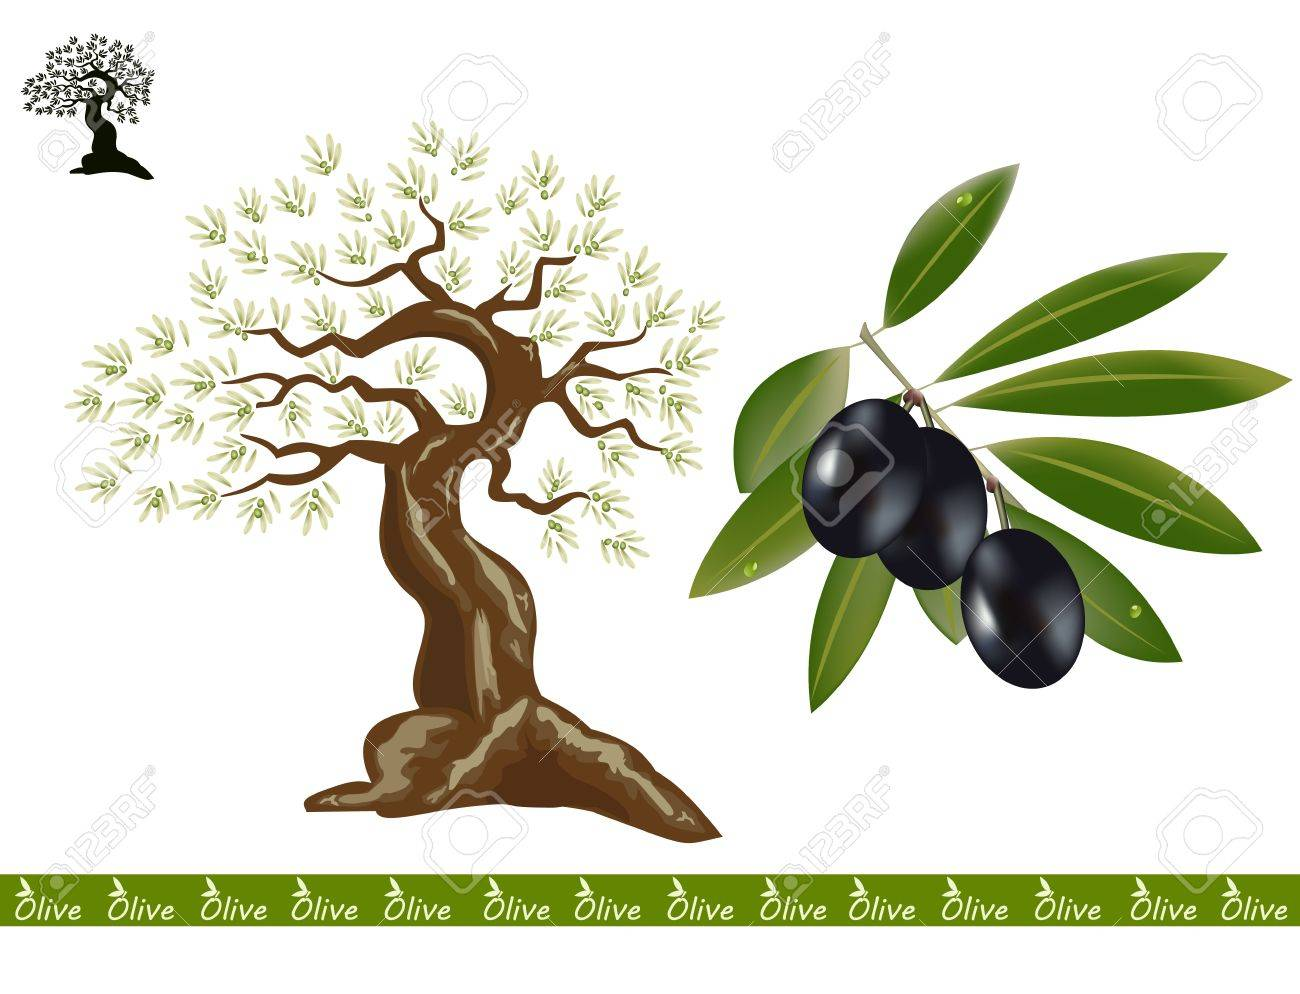 Olive trees for oliv products. A black olive branch on the side. Stock Vector - 13517475